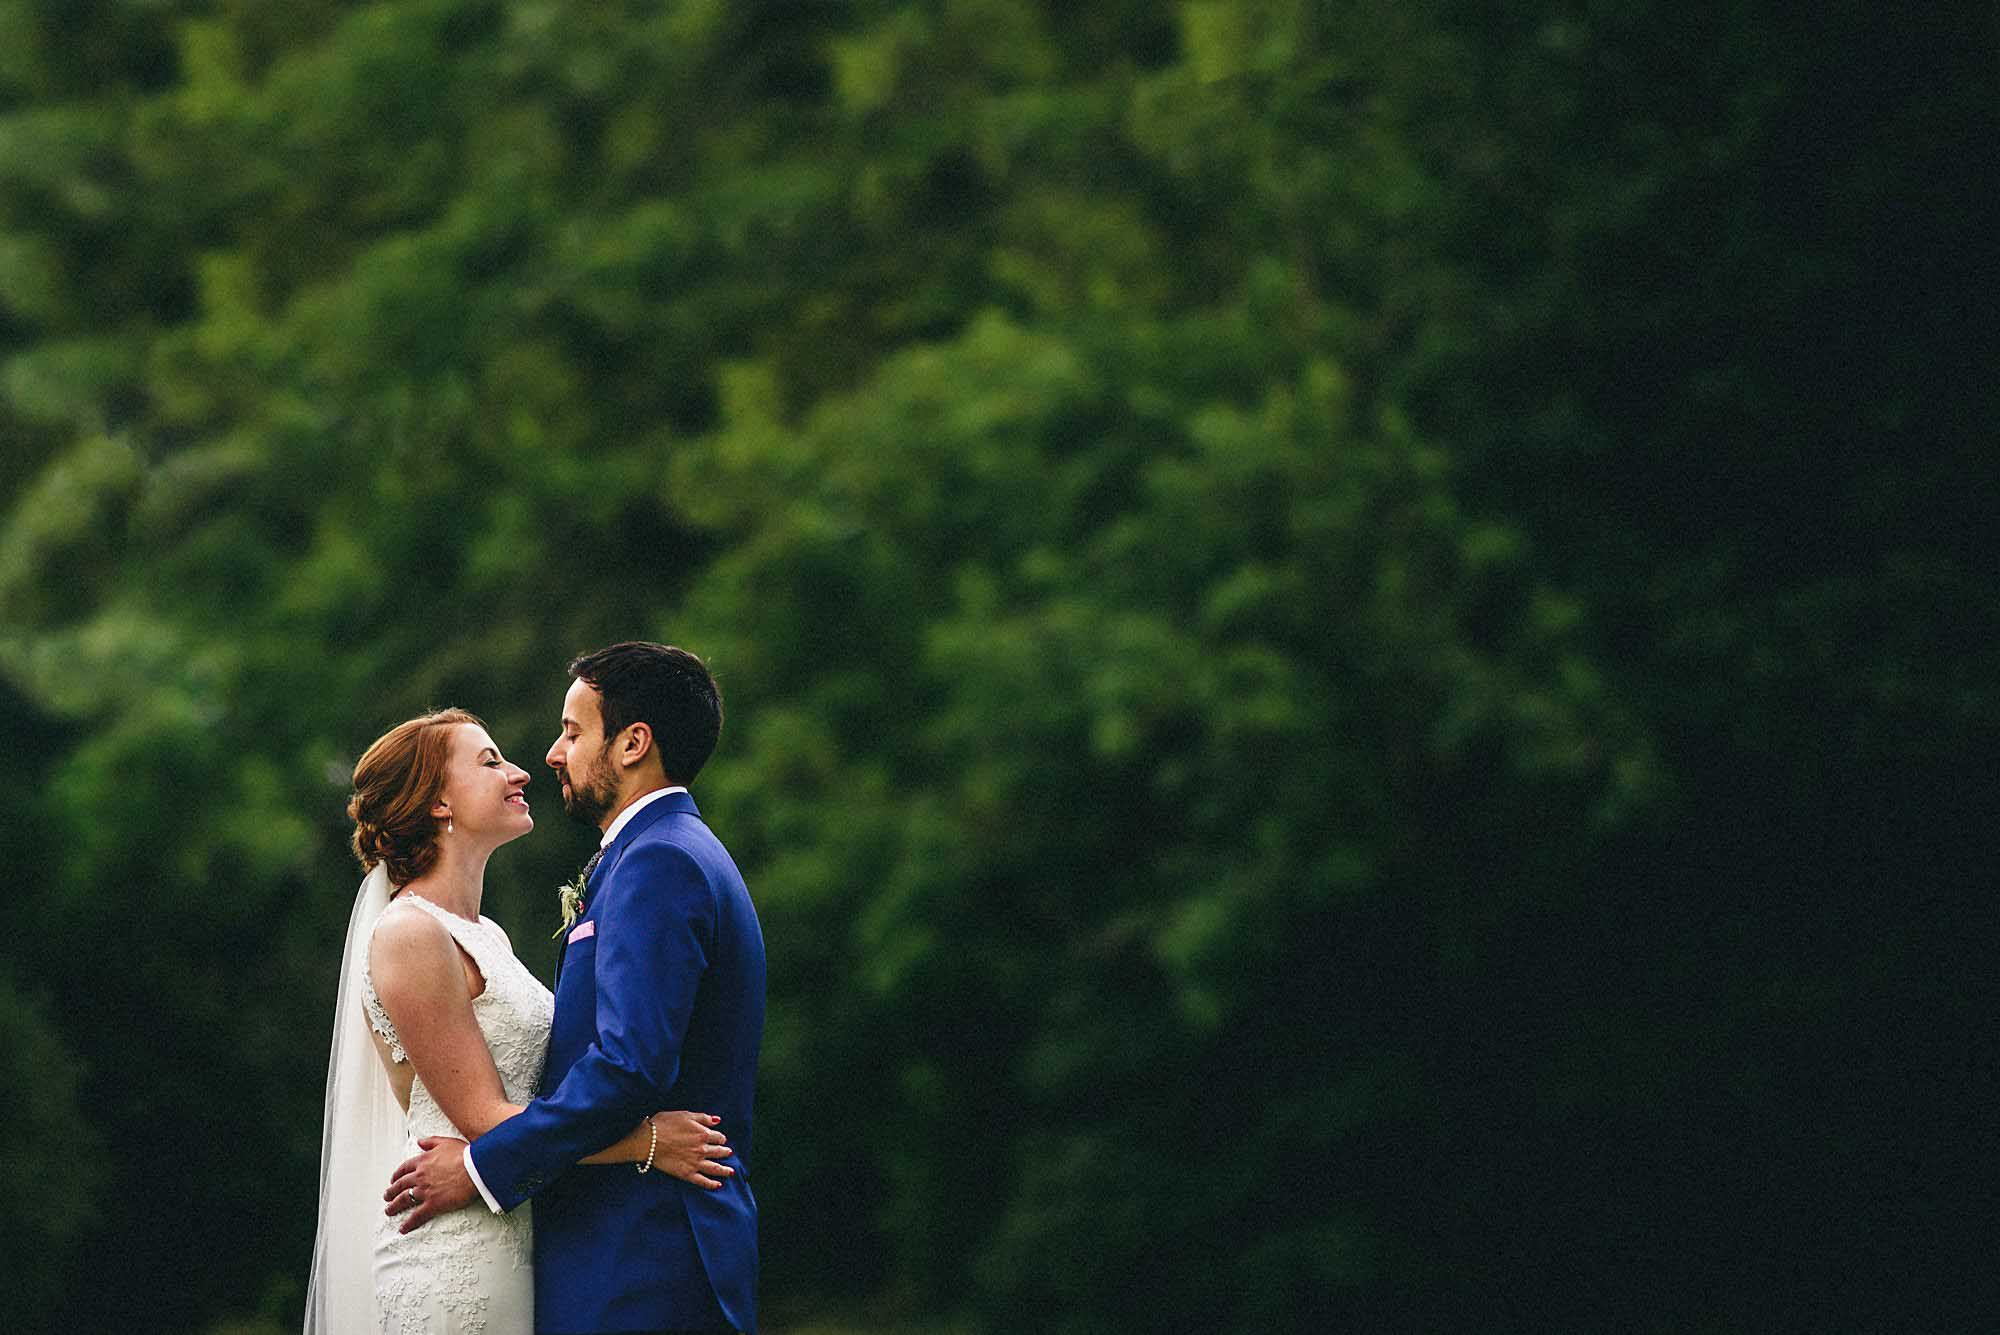 Narborough Hall Gardens wedding photography 37 Completed